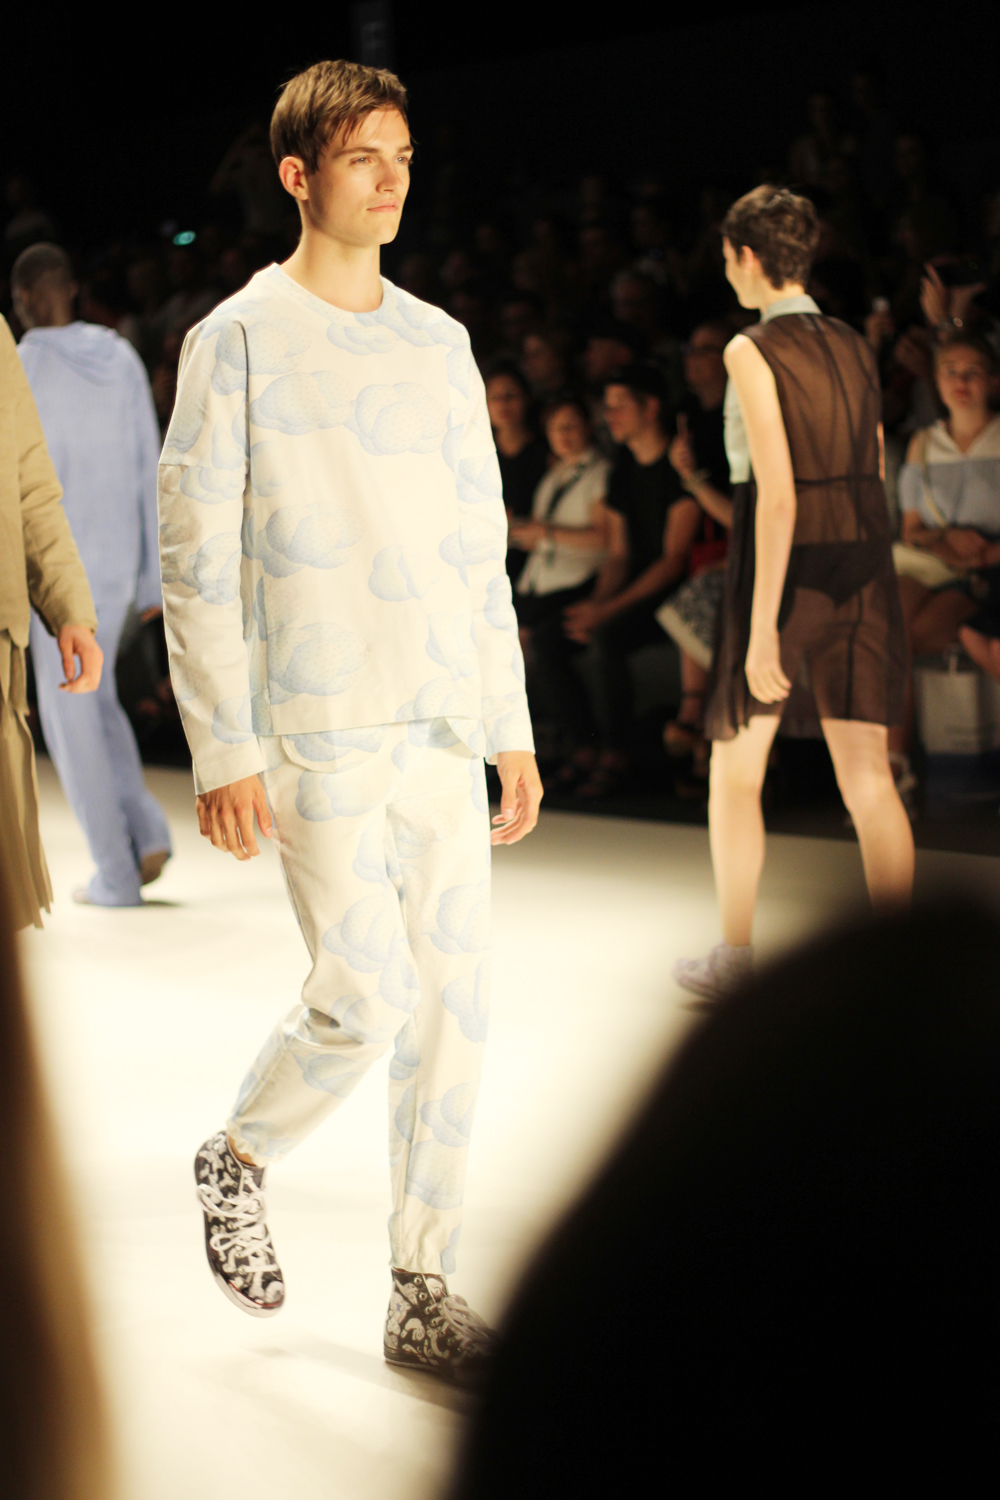 fatimayarie-berlinfashionweek-julianzigerli-menswear-runway-cloud-twopiece-img_4240